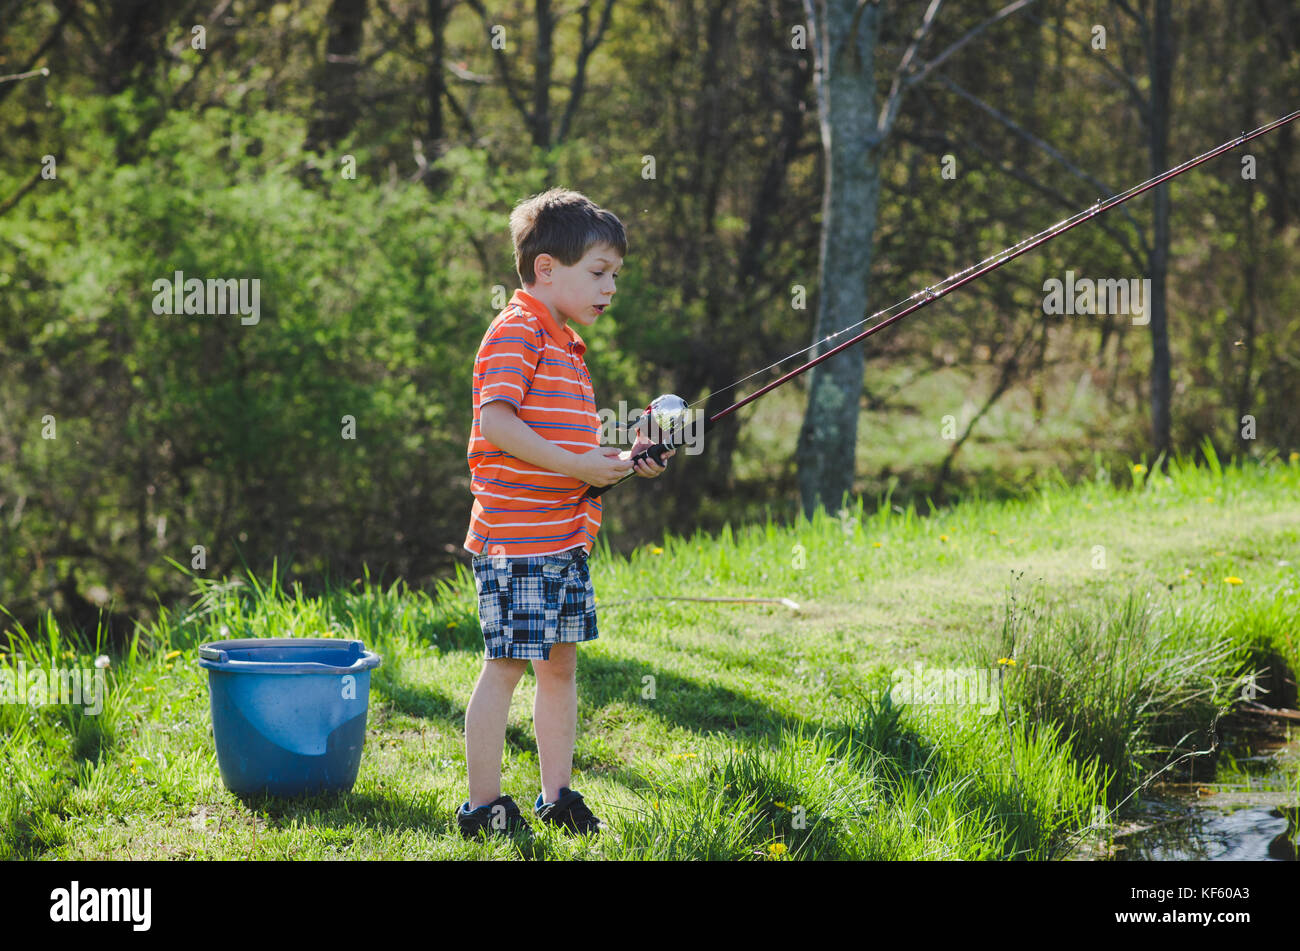 5-6 year old boy fishing by a pond in summer. - Stock Image